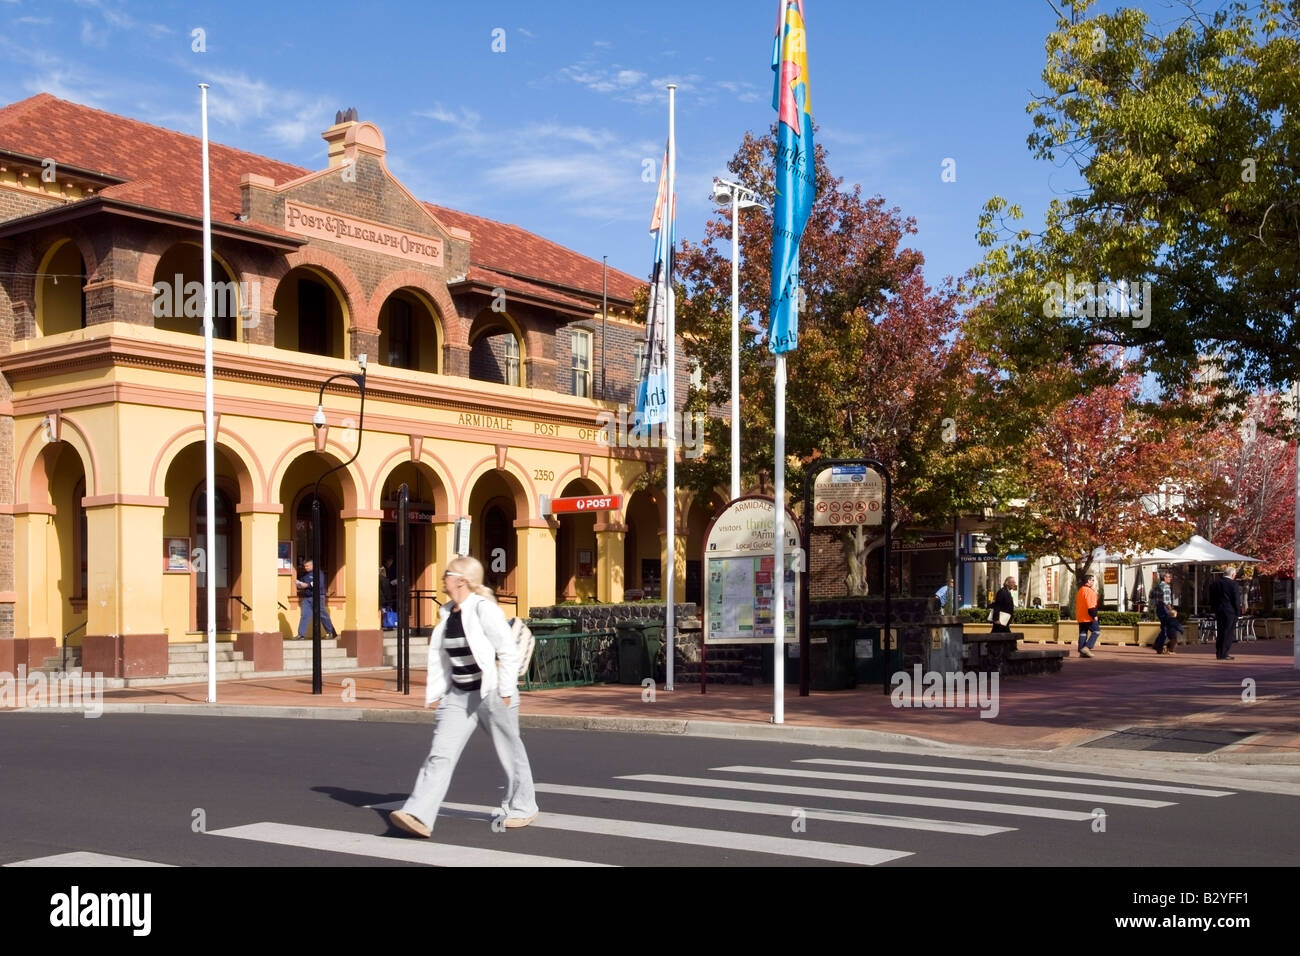 Attractive entrance to Armidale Civic Core, NSW, Australia - Stock Image